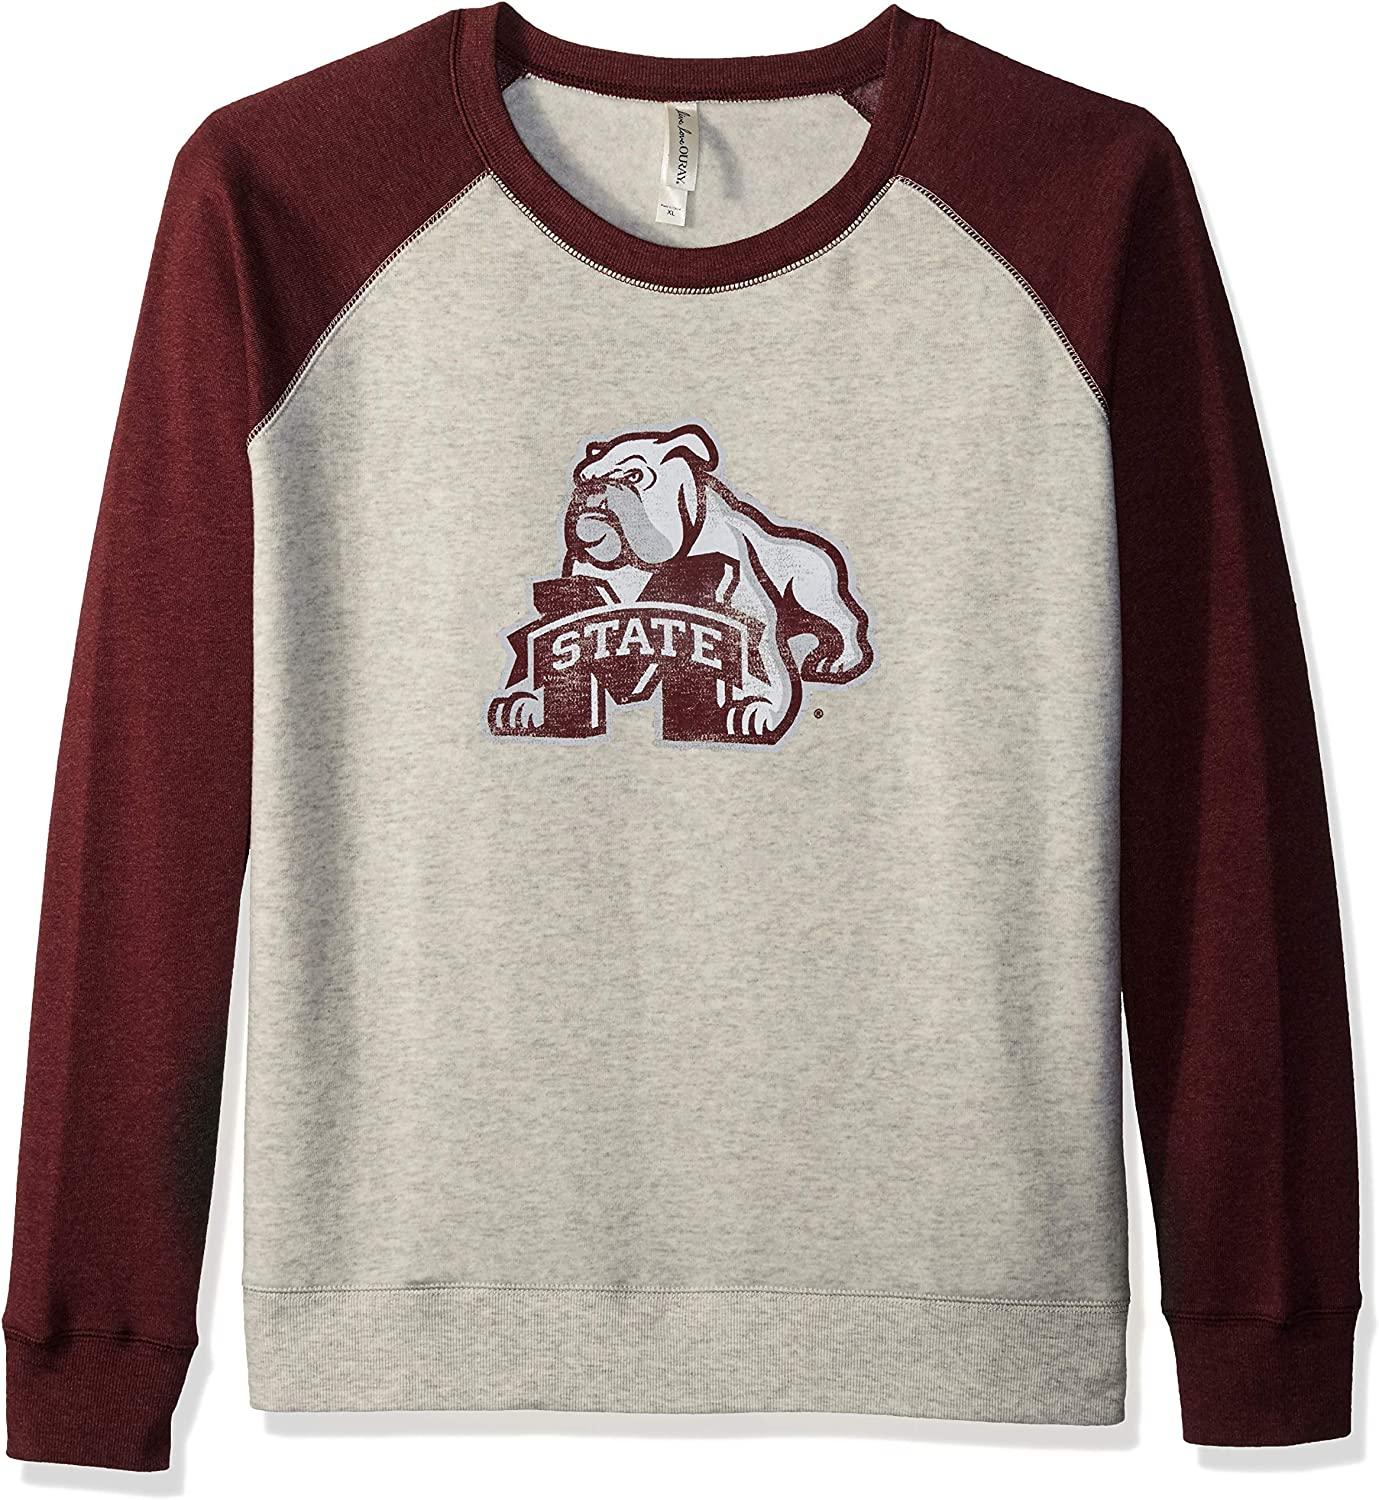 Ouray Price reduction Sportswear Women's Cozy National products Crew